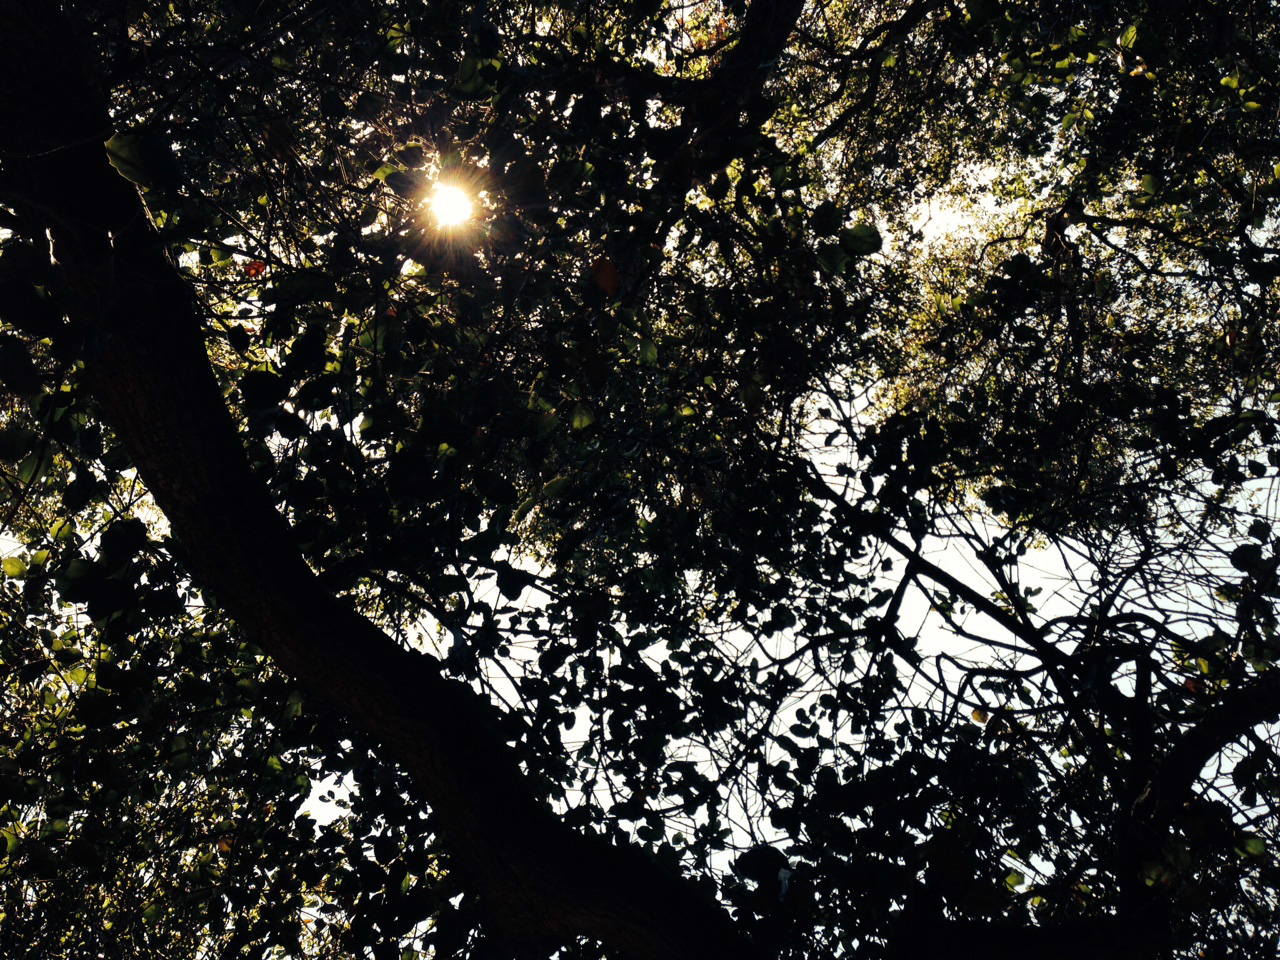 Sun shines above a canopy of leaves